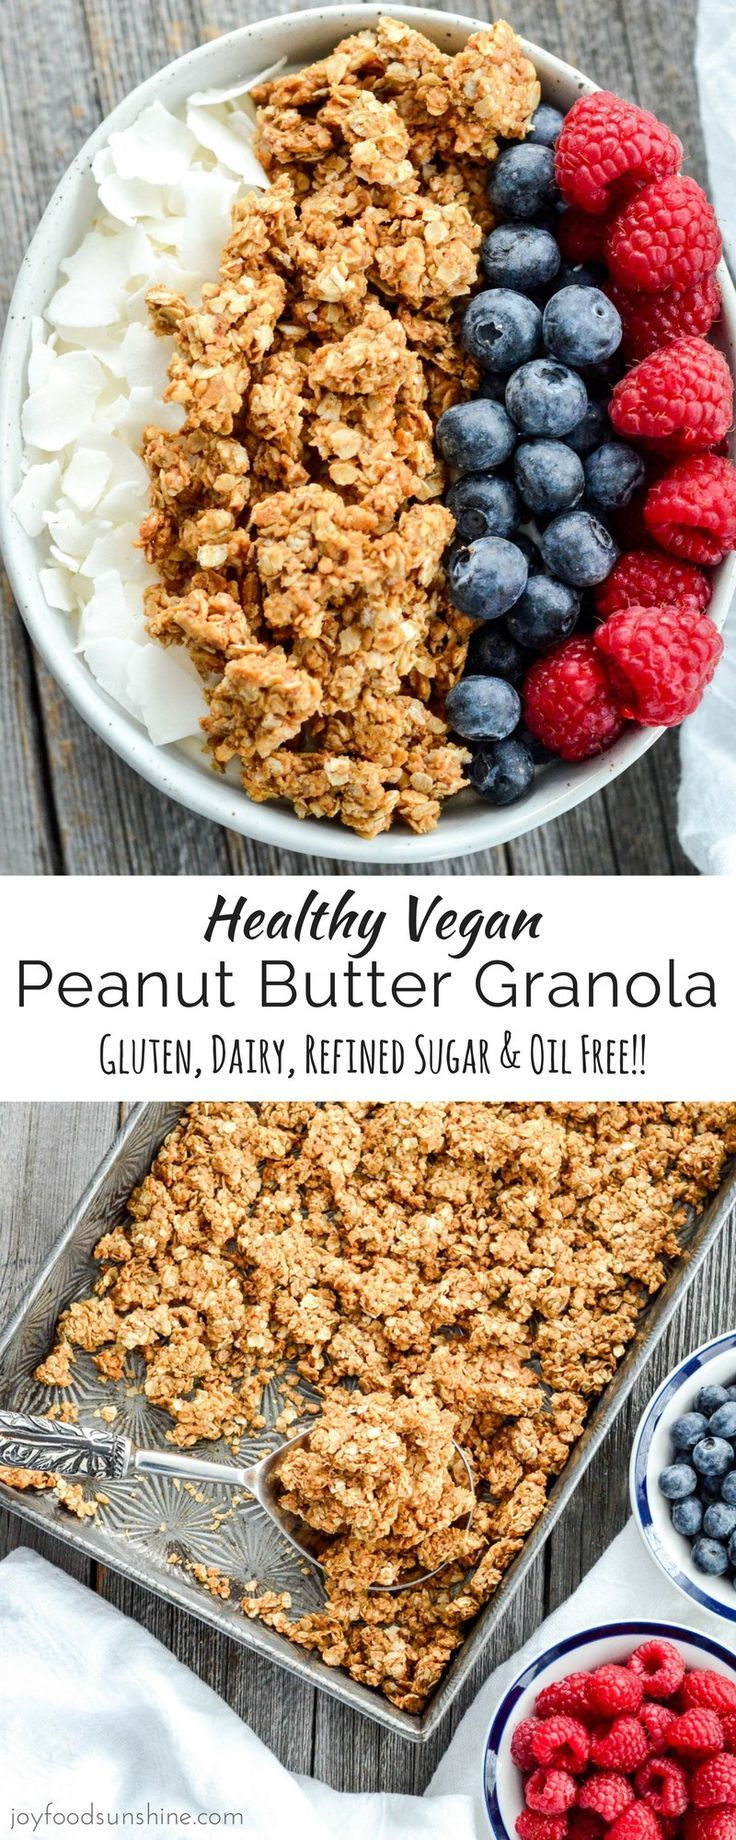 This Healthy Peanut Butter Granola Is The Perfect Make Ahead Breakfast Recipe Wit Peanut Butter Granola Recipe Healthy Peanut Butter Granola Recipes